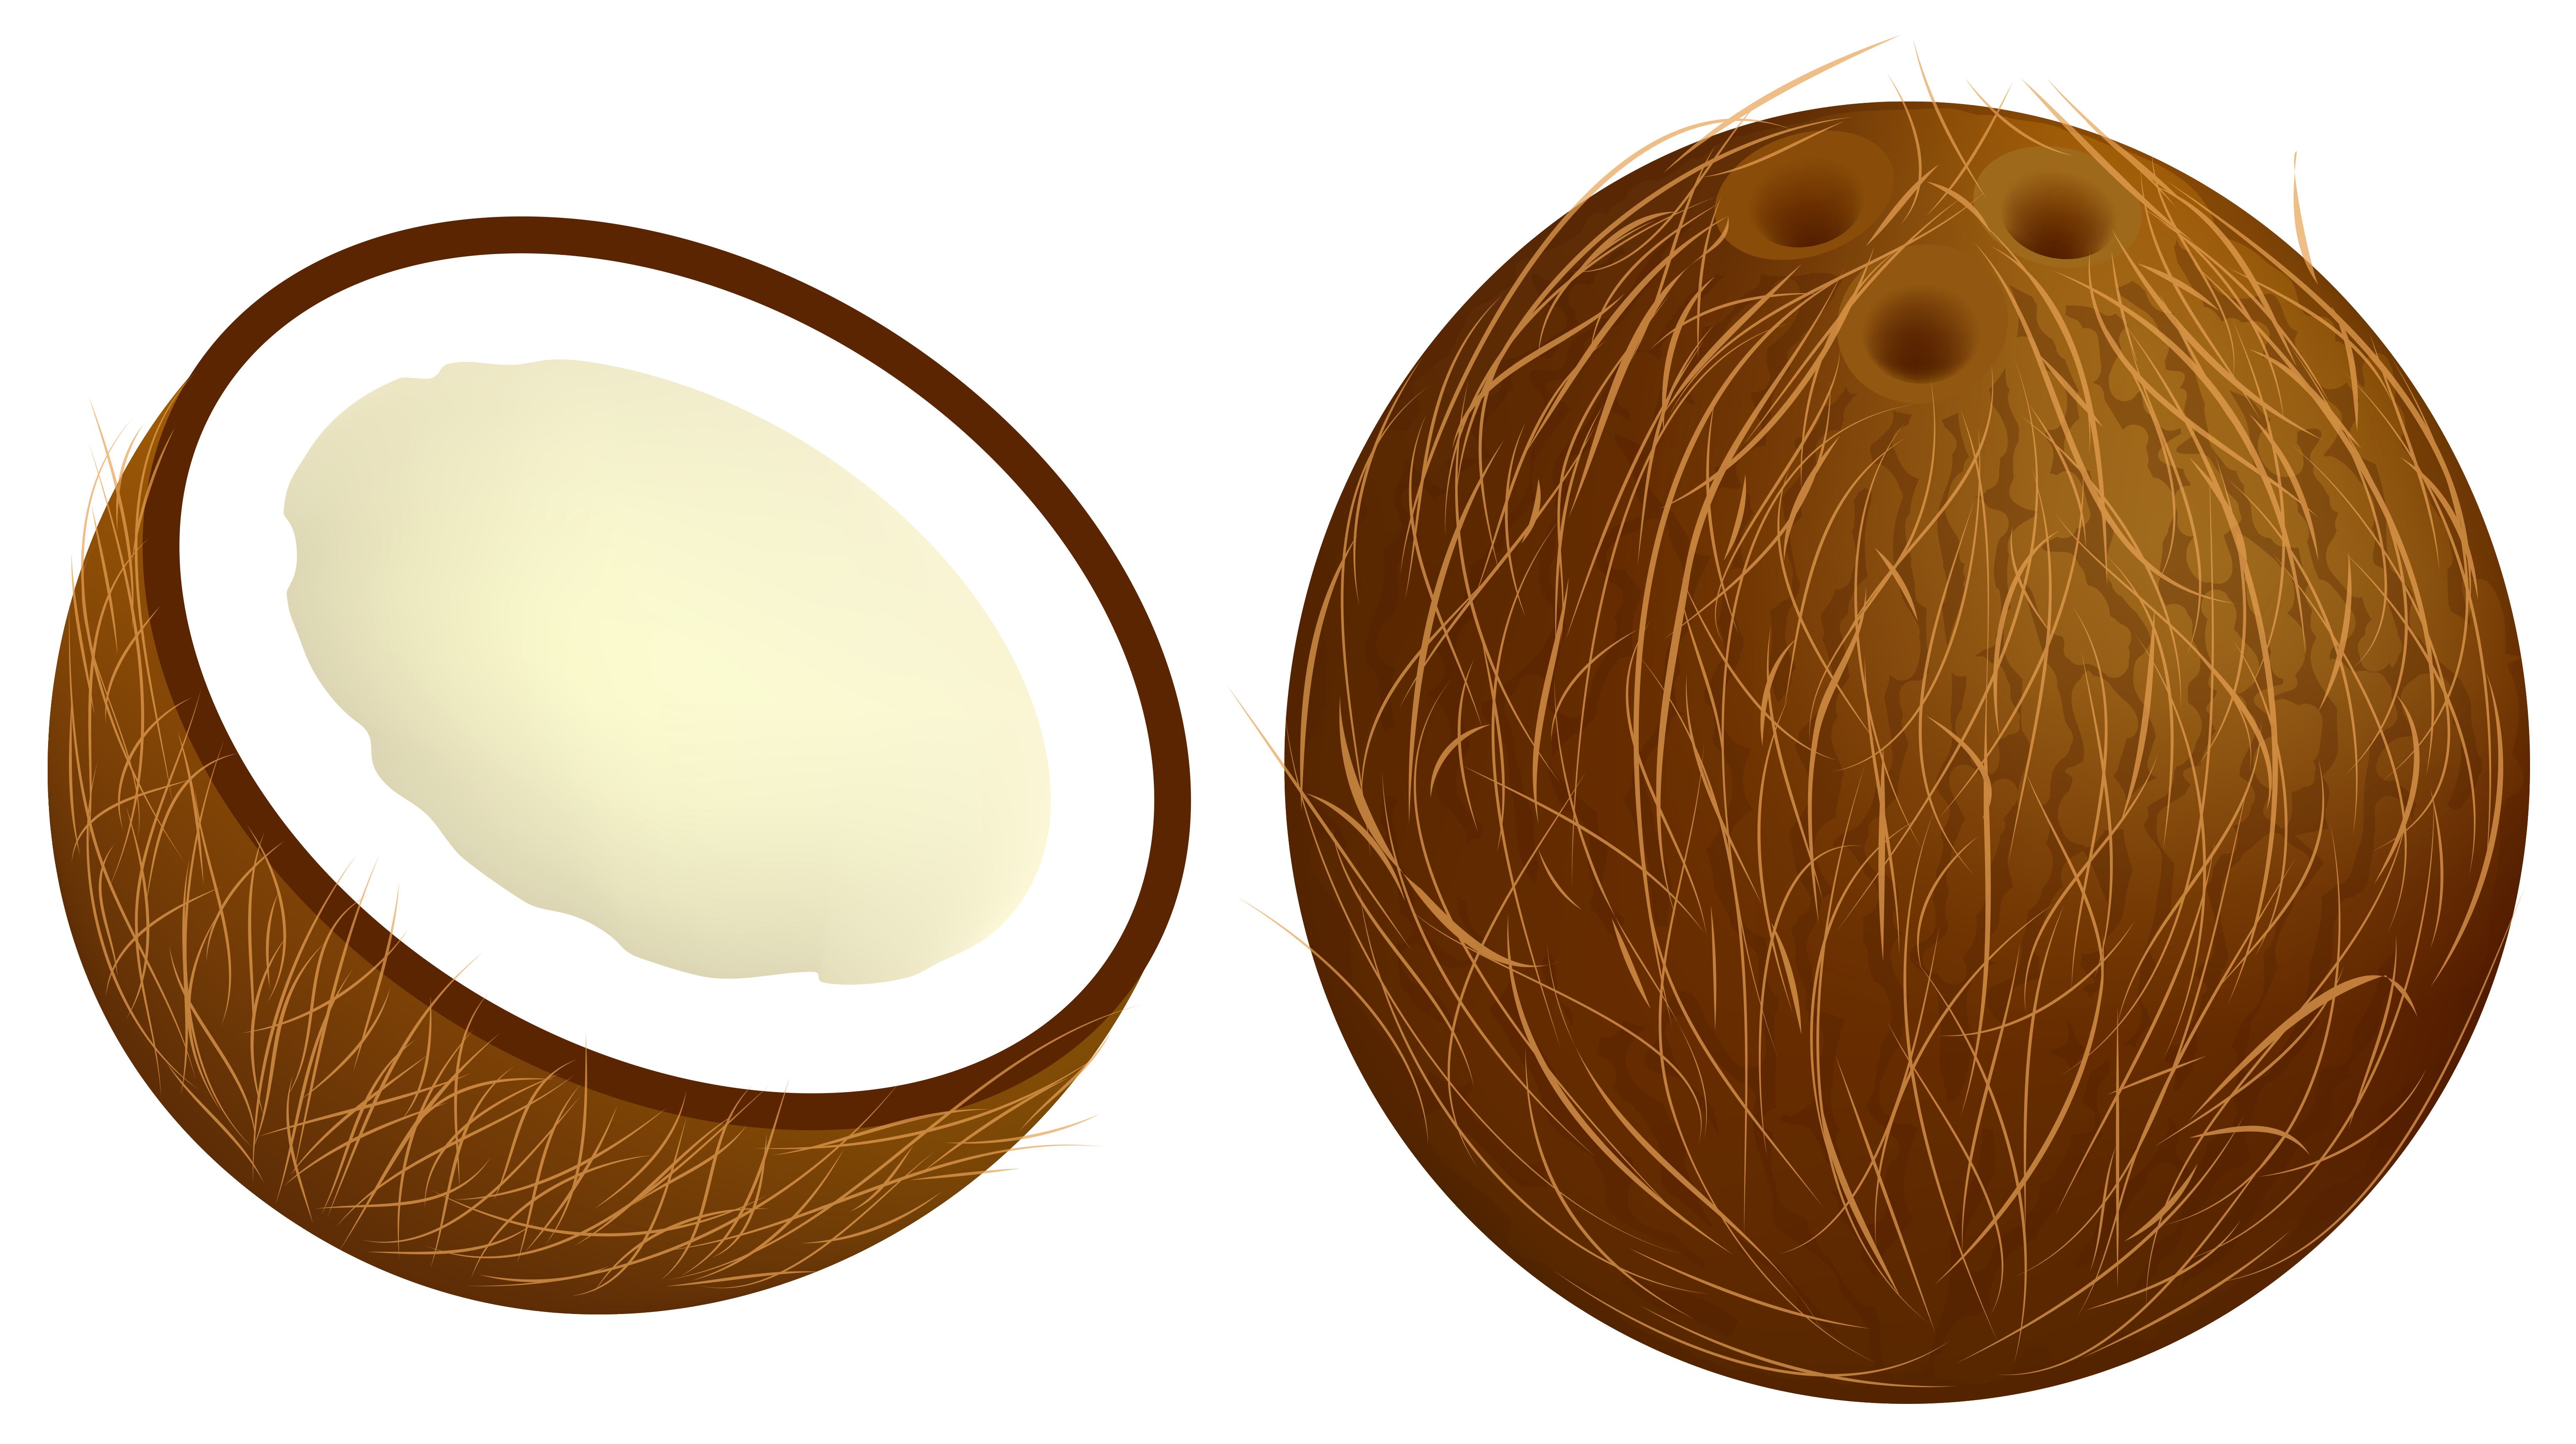 Coconut PNG Vector Clipart Image ภาพ, พื้นหลัง